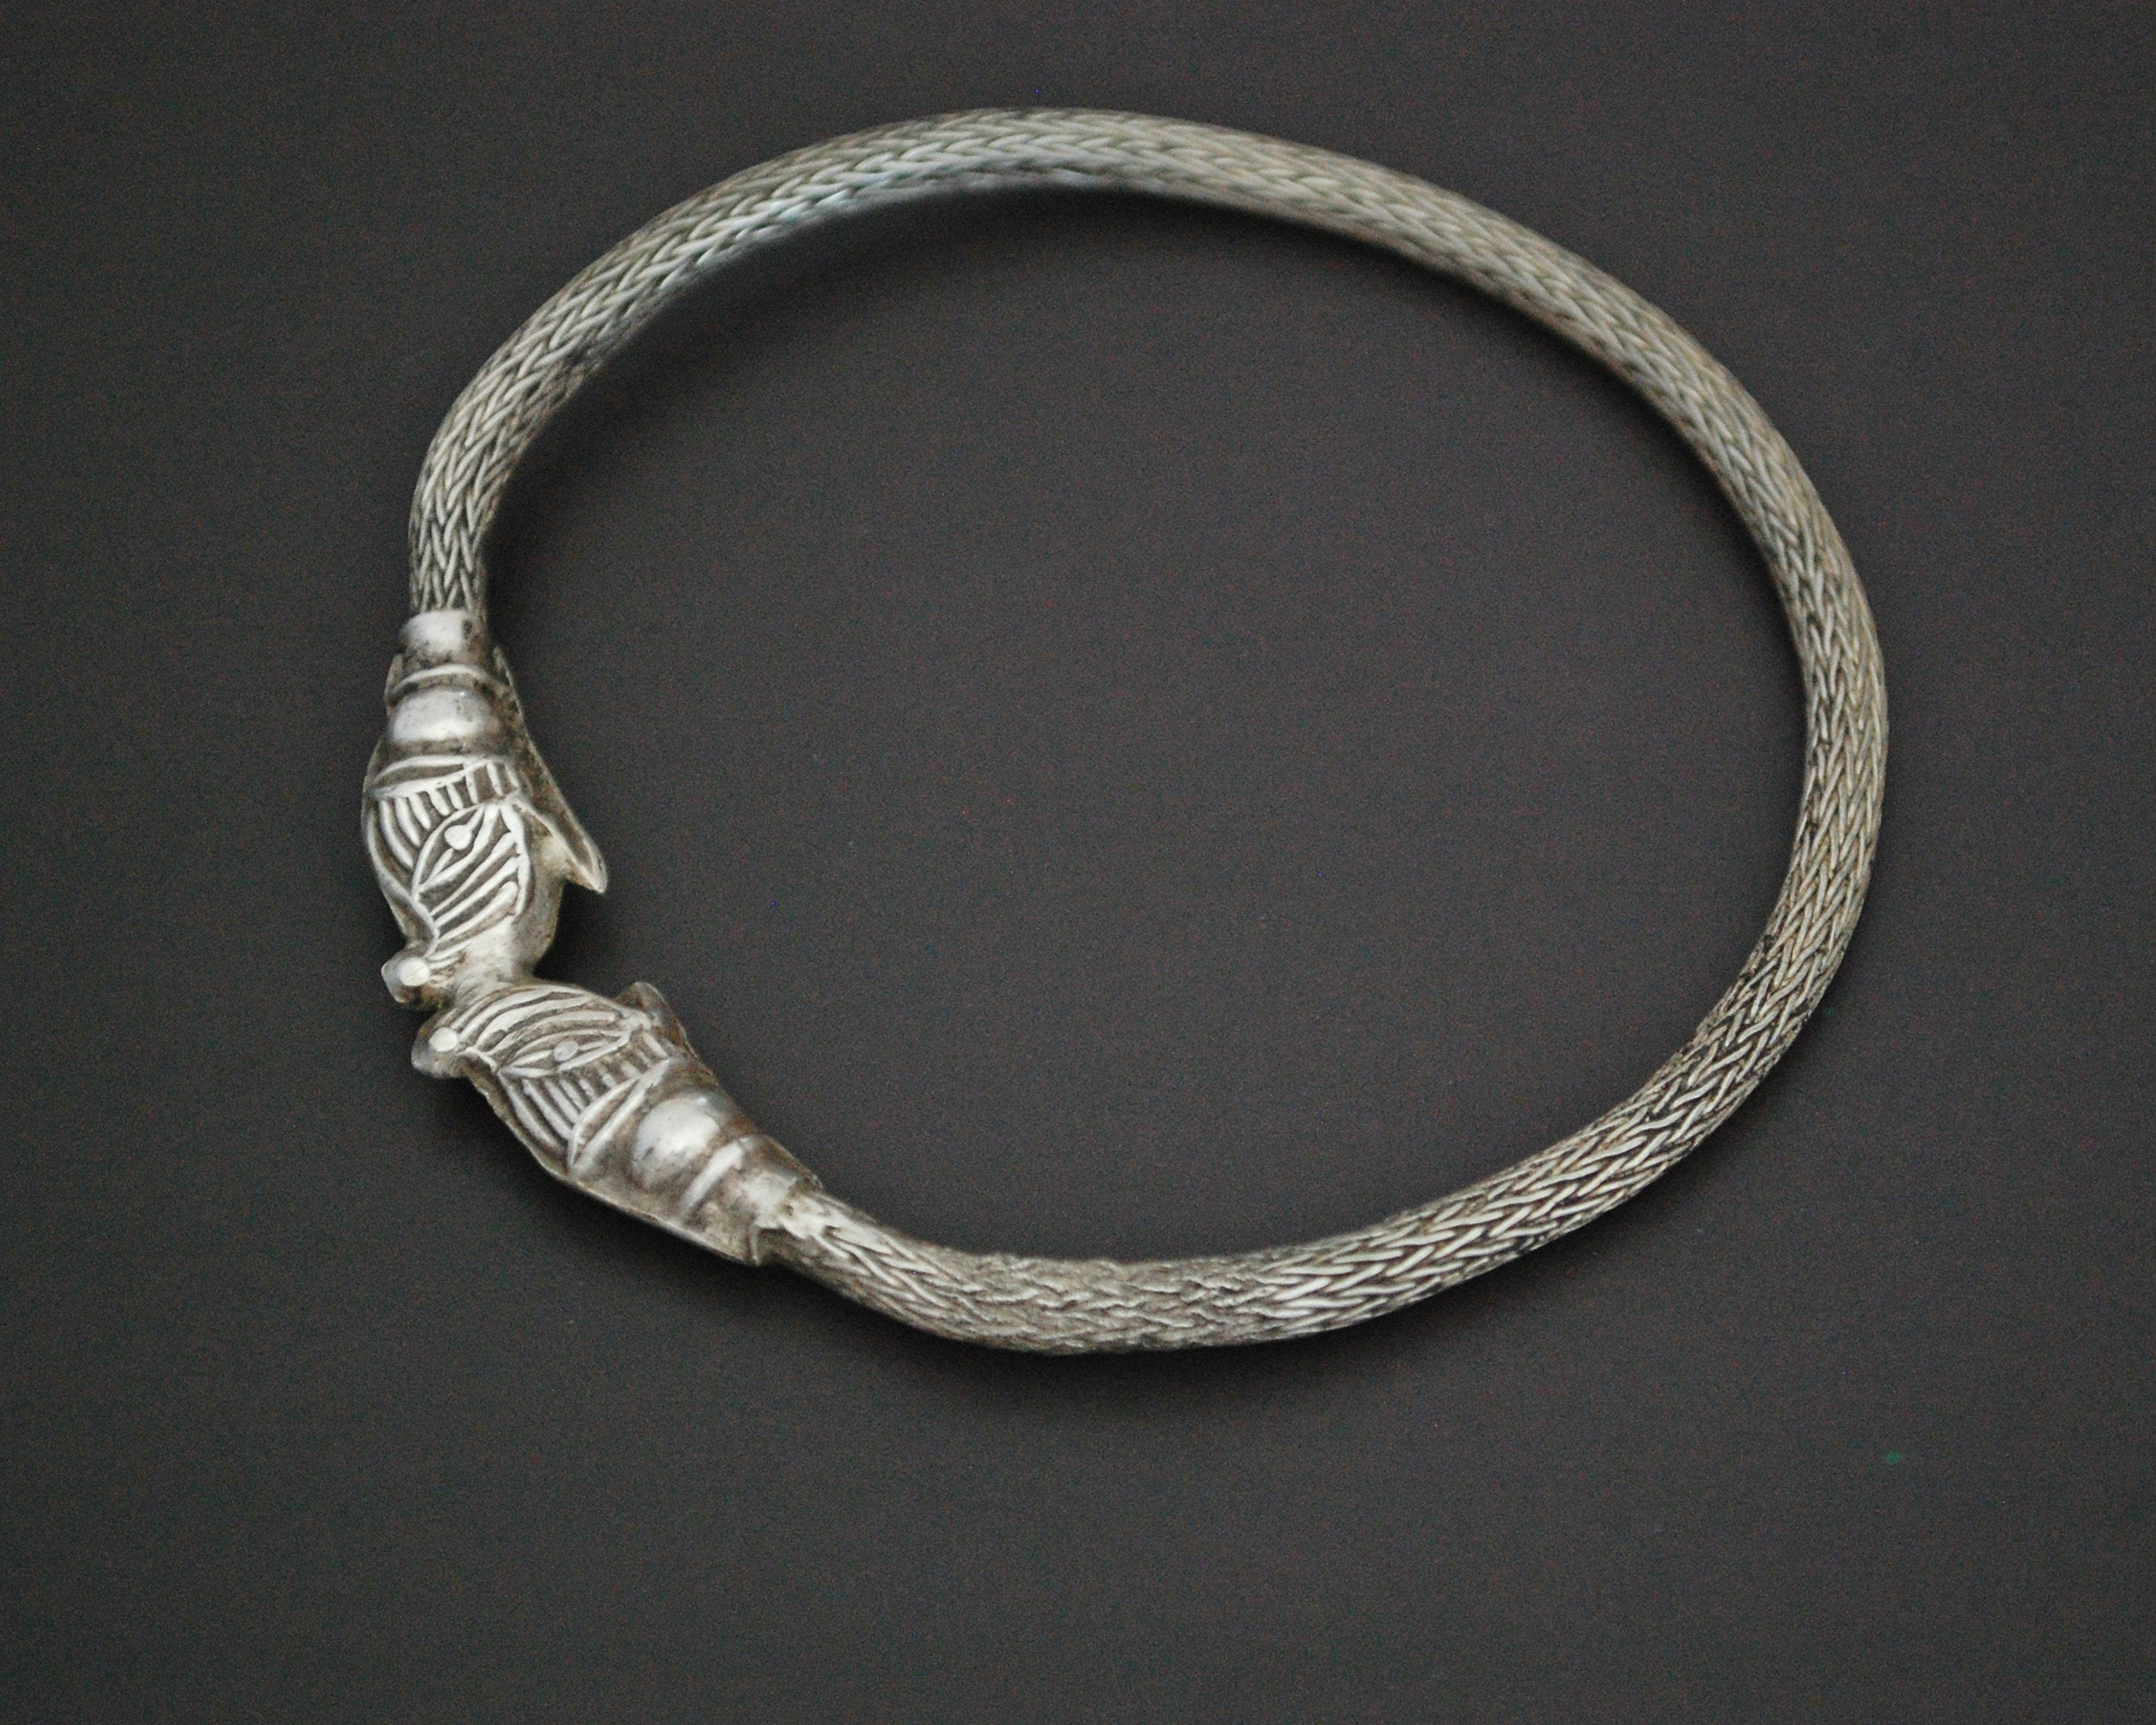 Indian Elephants Head Snake Chain Bracelet